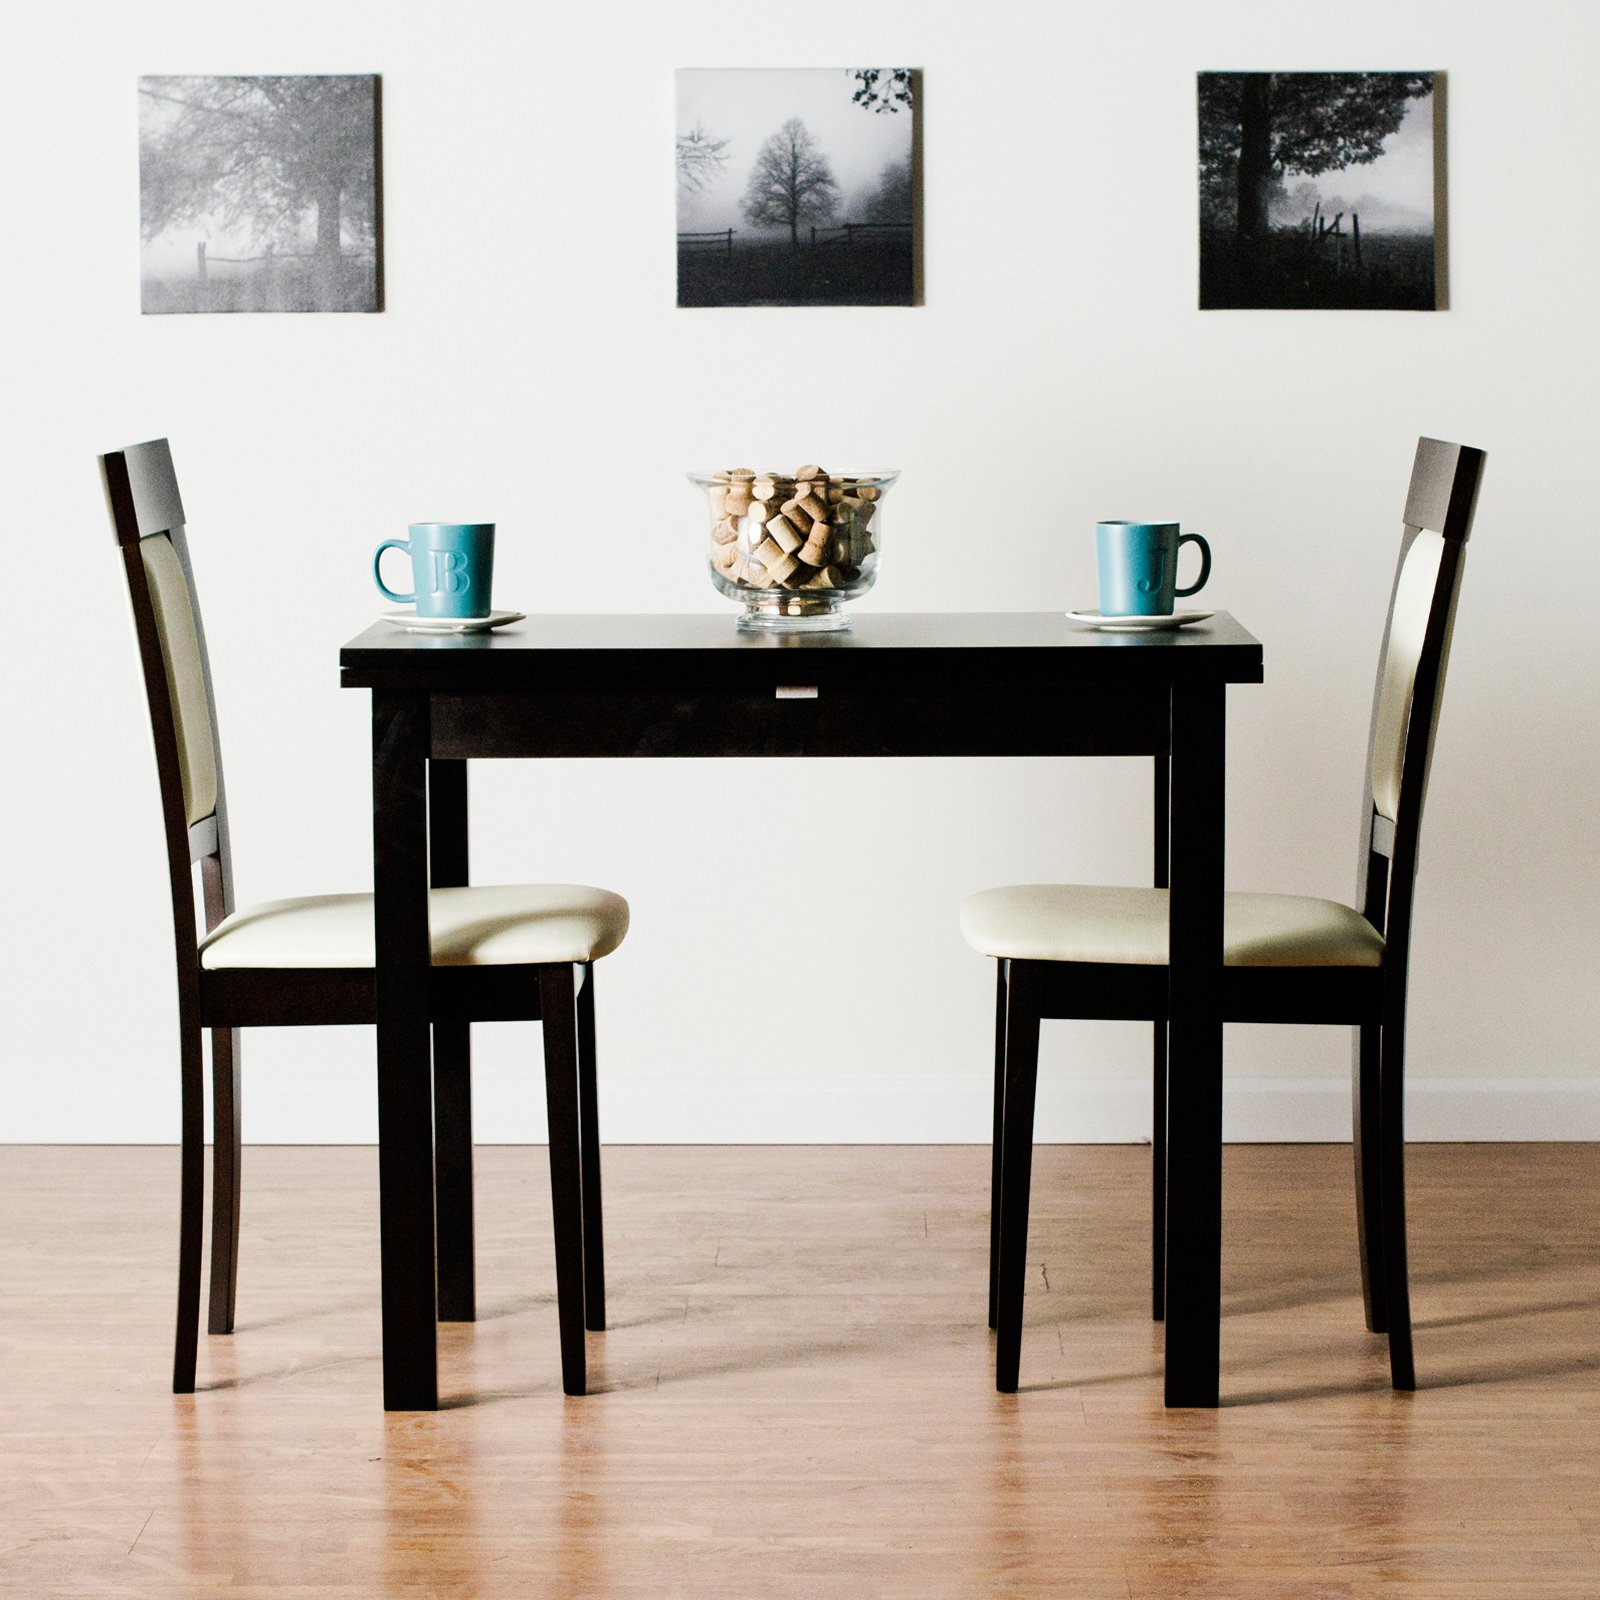 Aeon Furniture Flex Dining Table - Coffee